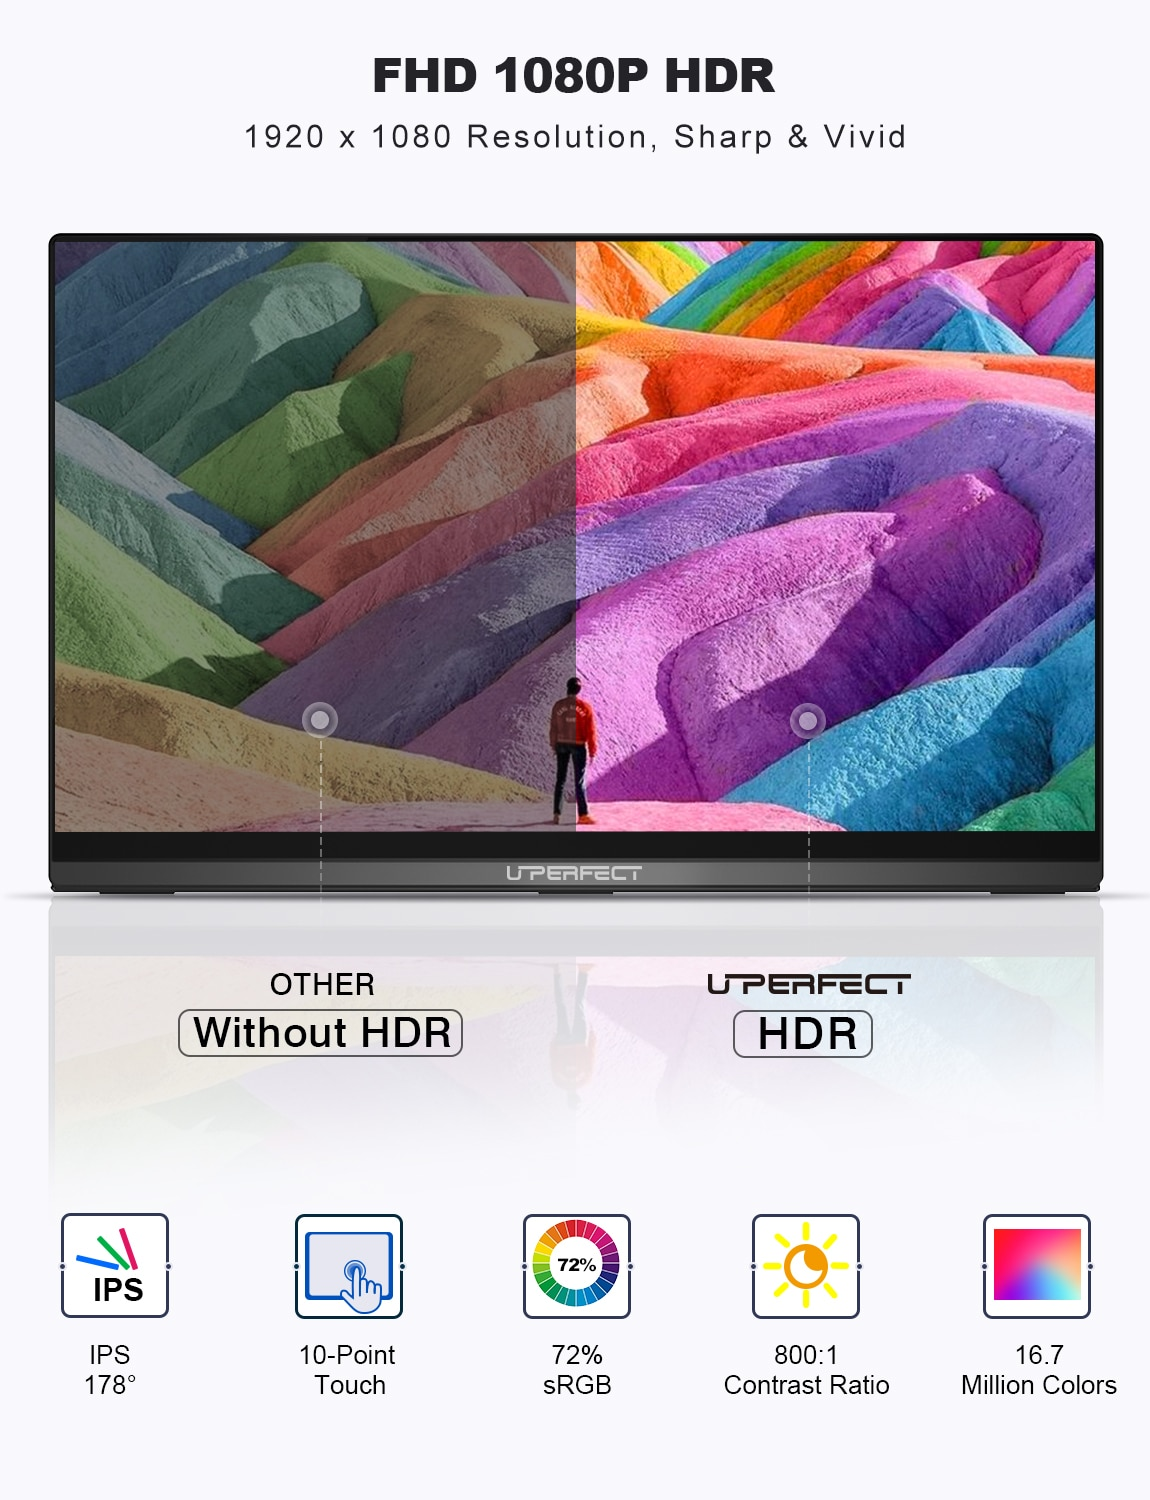 UPERFECT Portable 15.6 Inch Touchscreen Monitor With Gravity Sensor 360° Rotation TYPE C HDMI Second Screen For Samgsung HUAWEI